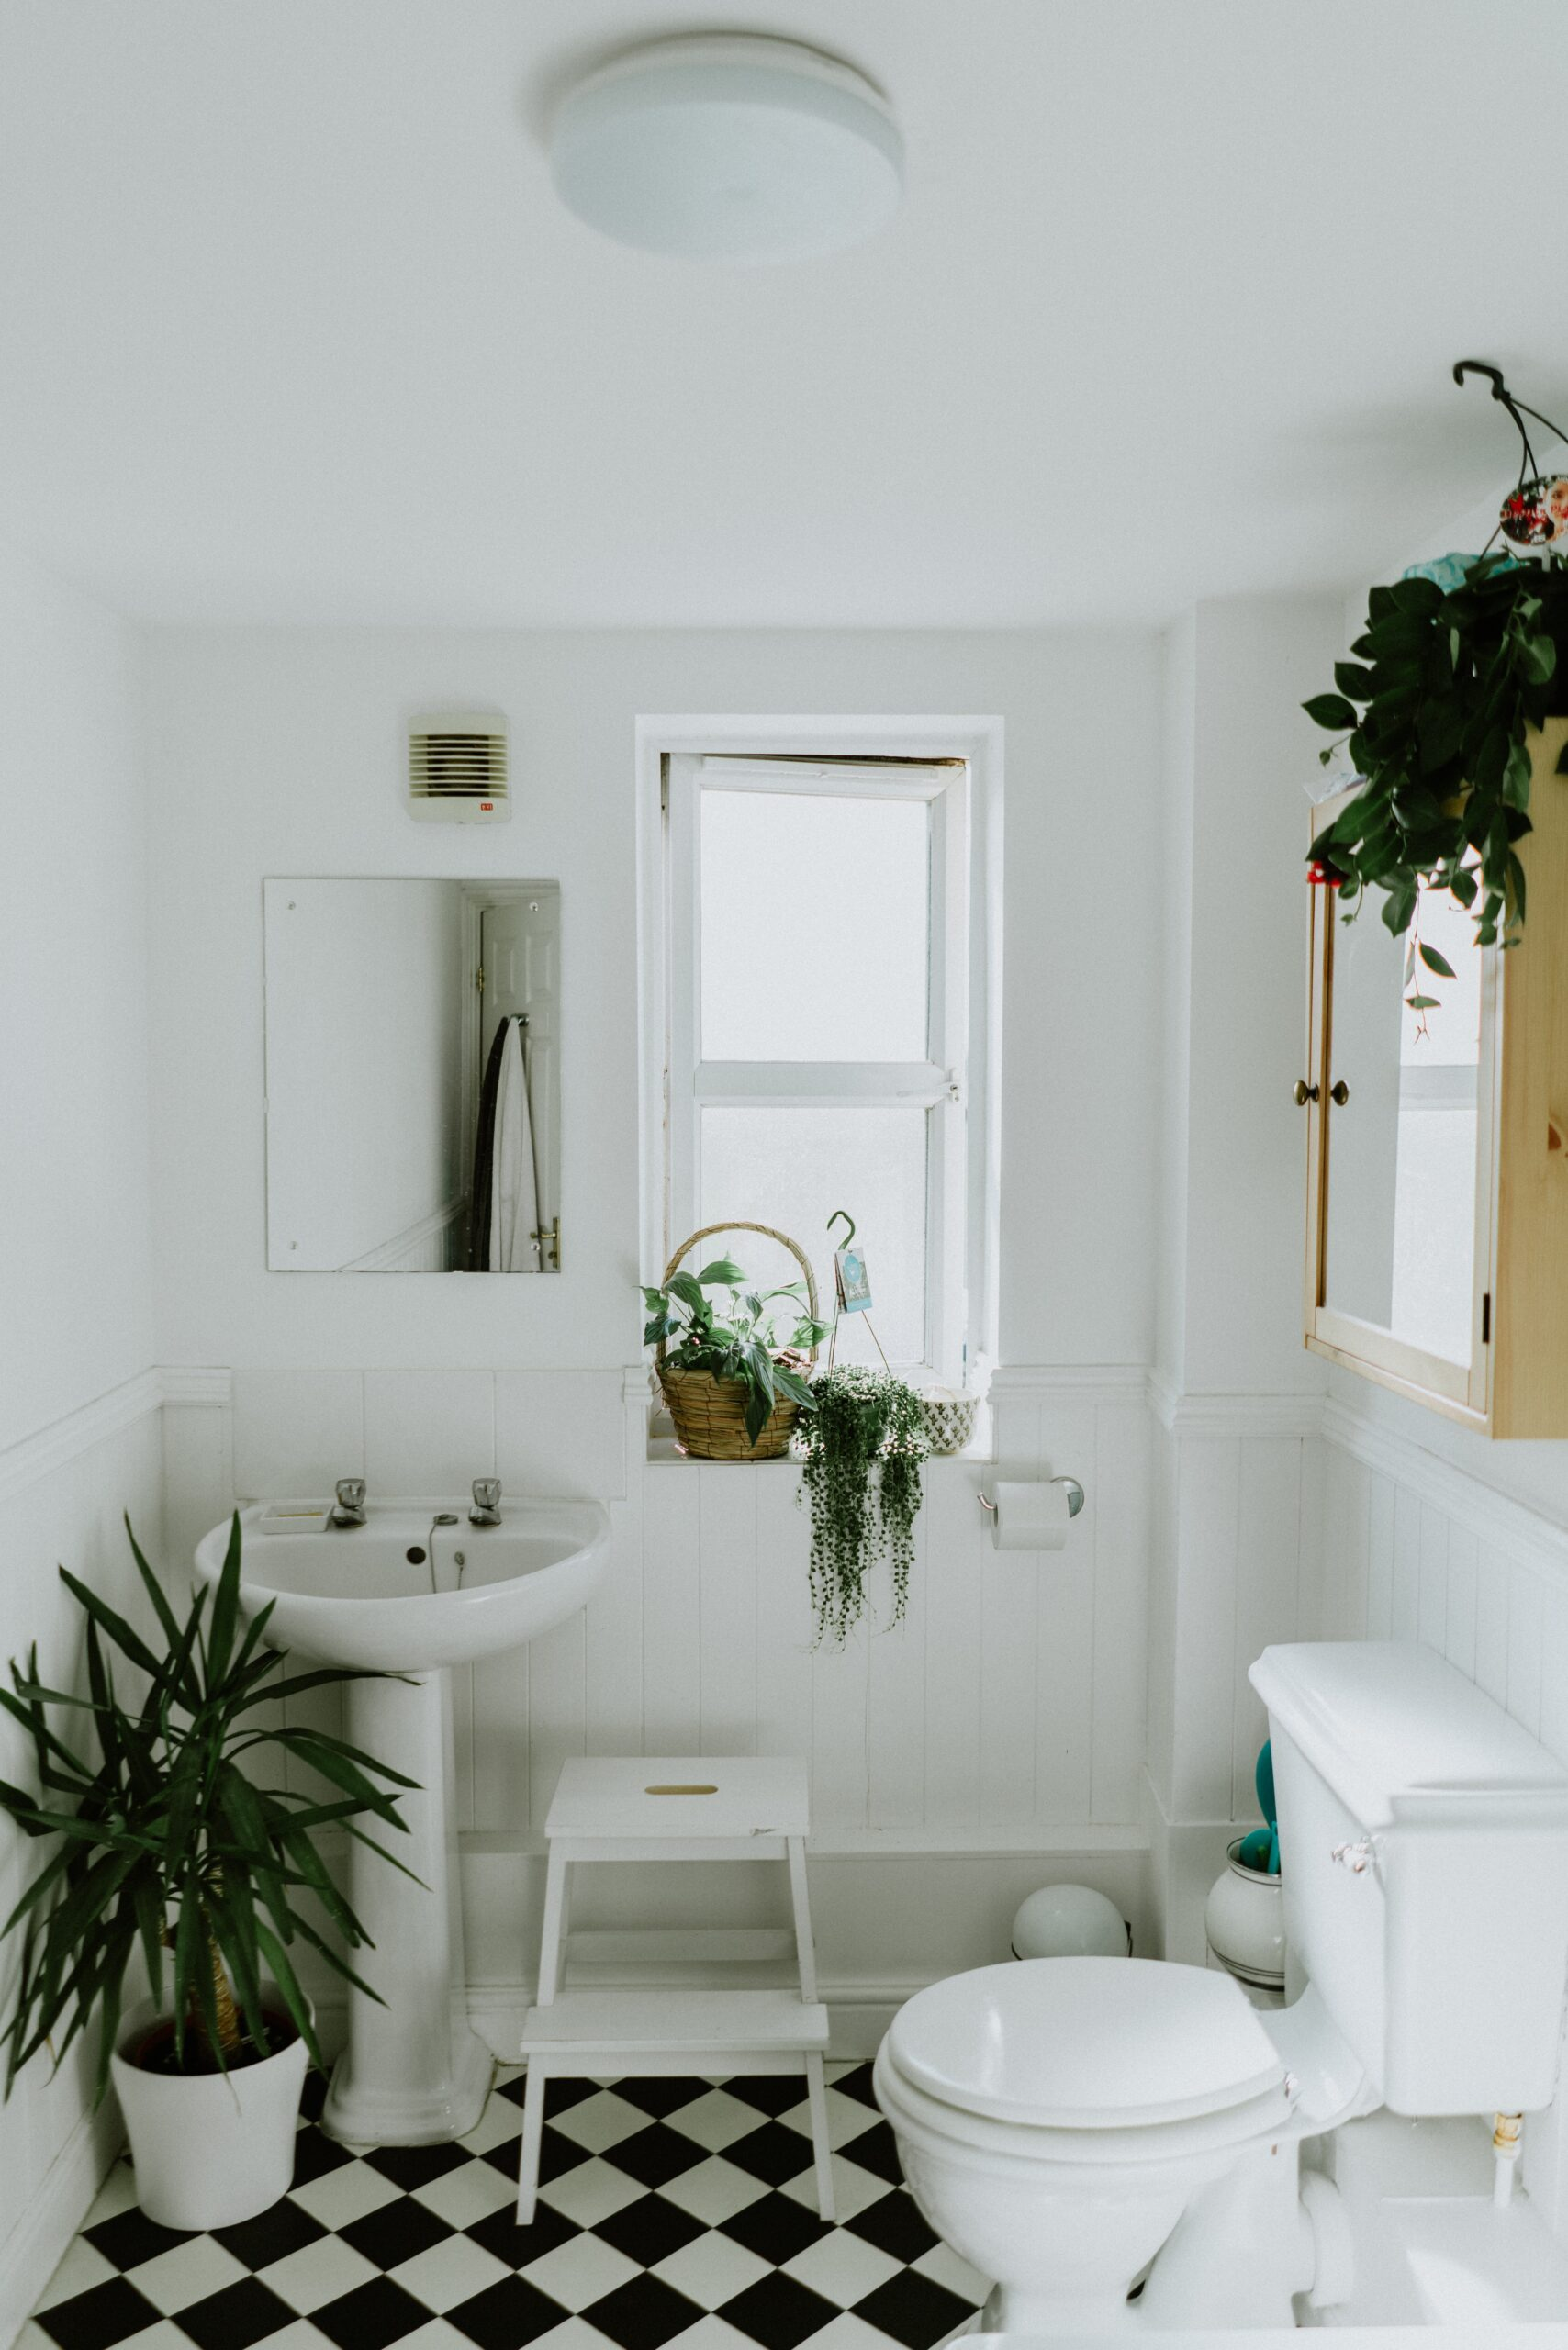 White bathroom with white and black tile green plants white ceramic pedestal sink white toilet